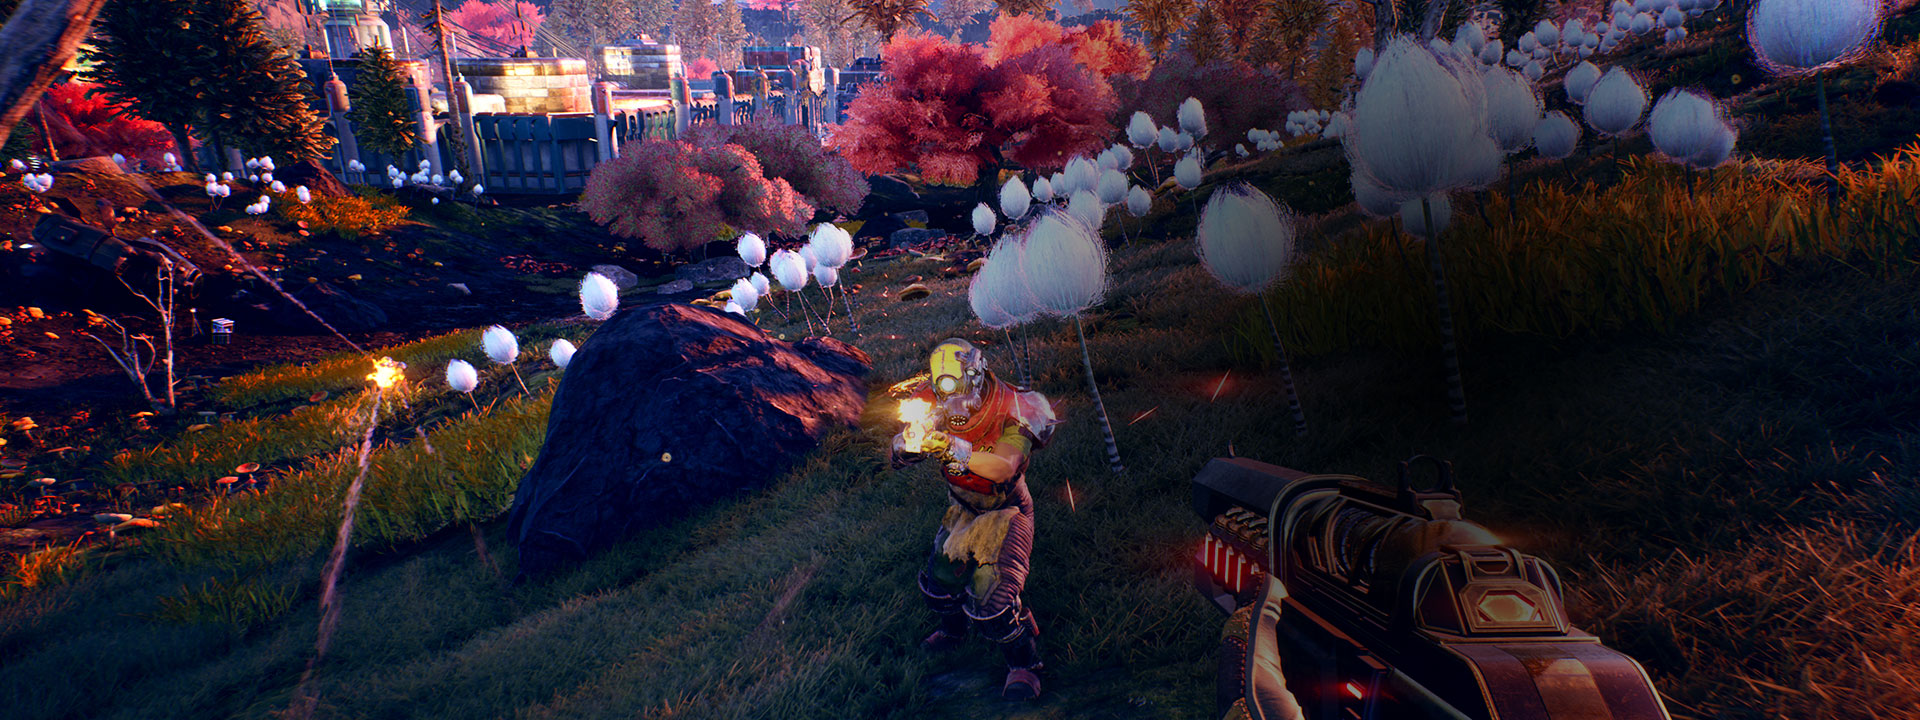 First person view of the player character in a field facing human enemies with guns